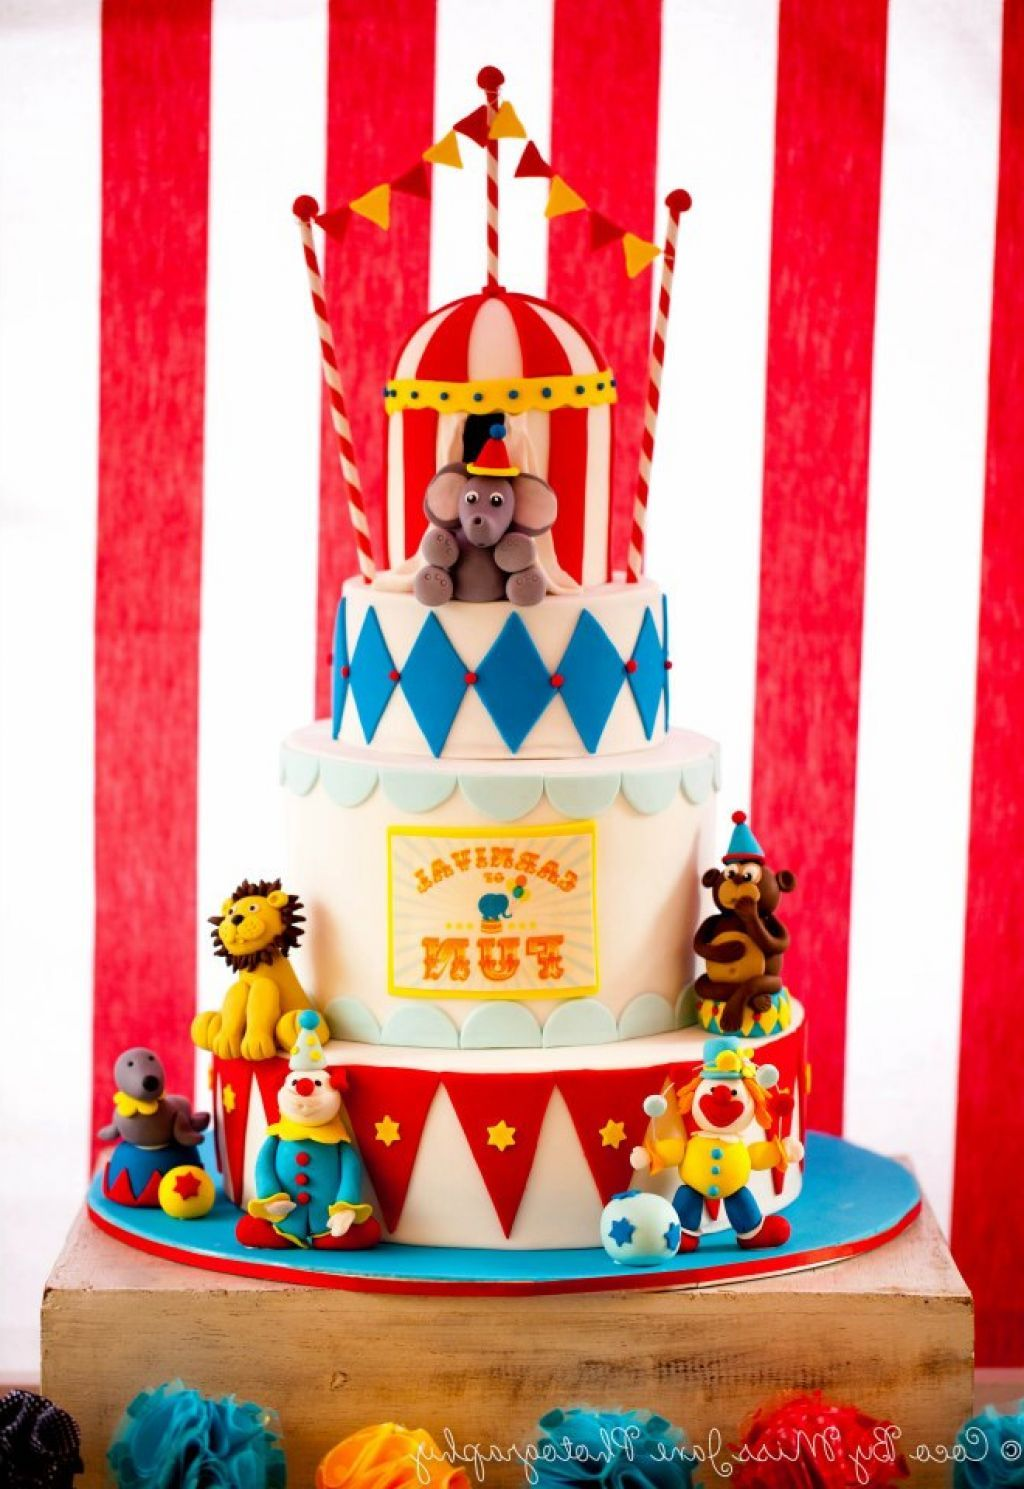 Tired Circus Themed Cake Featuring Handmade Circus Animals Clowns